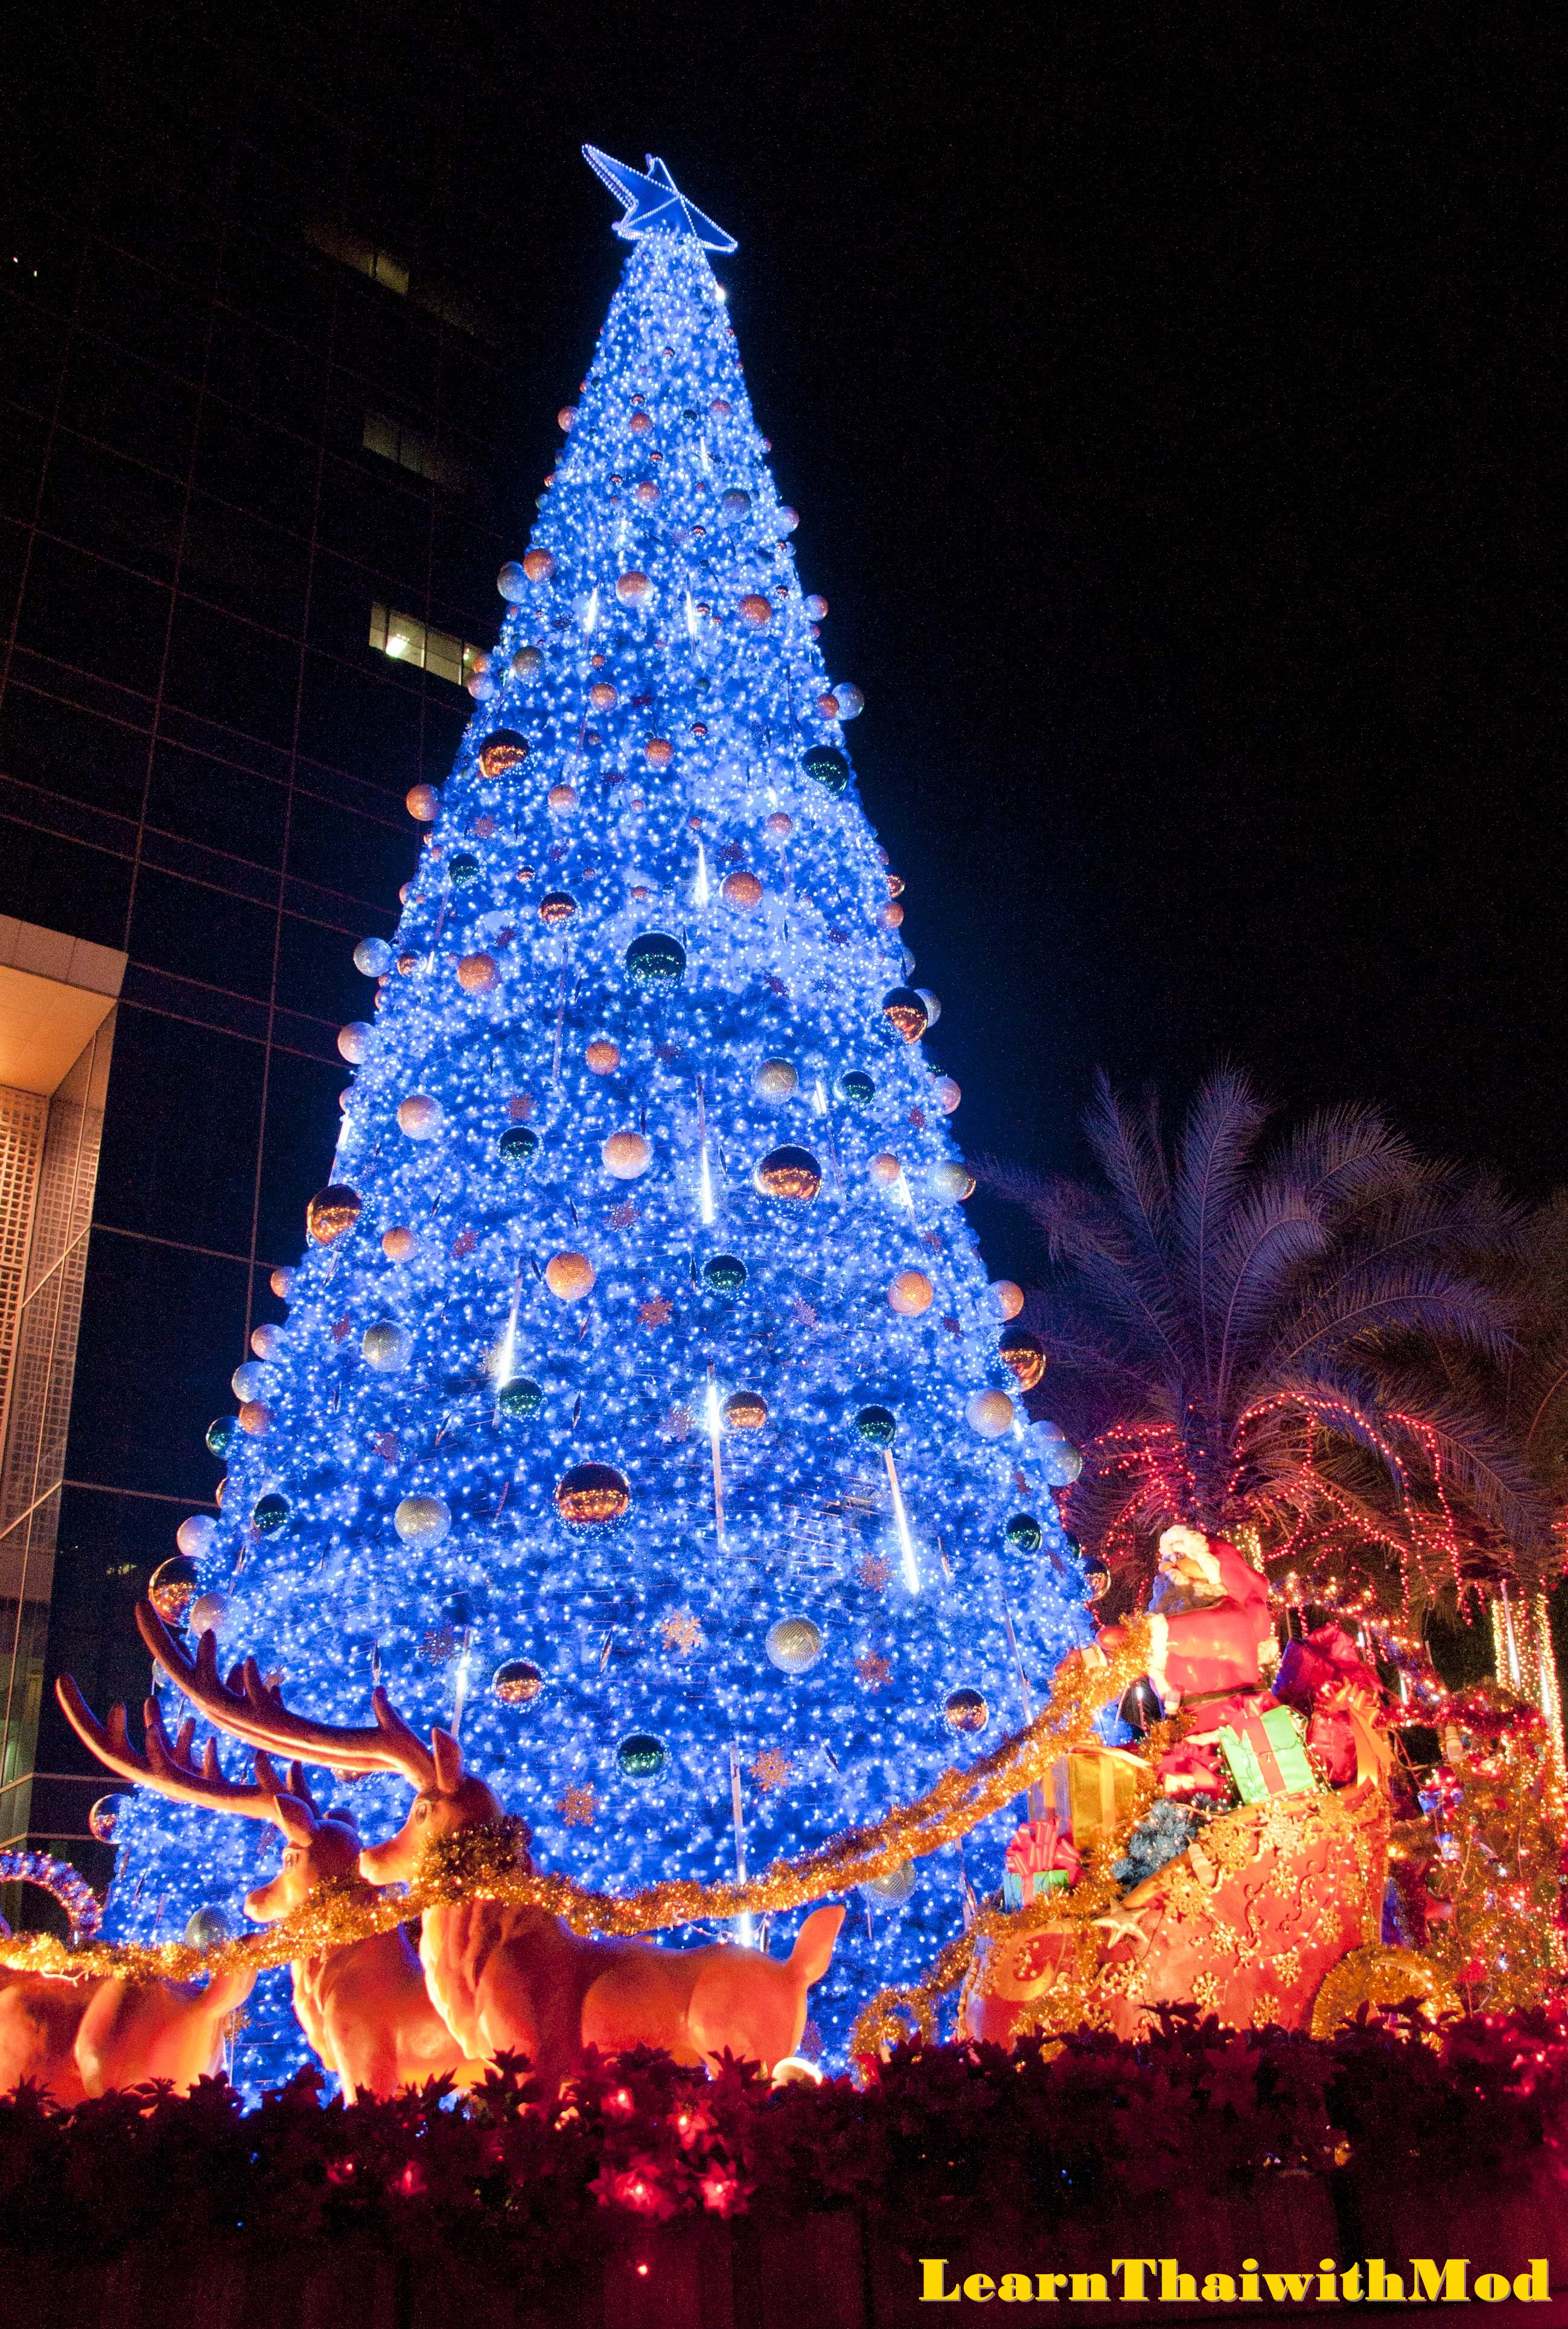 Bangkok's Christmas Lights | Learn Thai with Mod